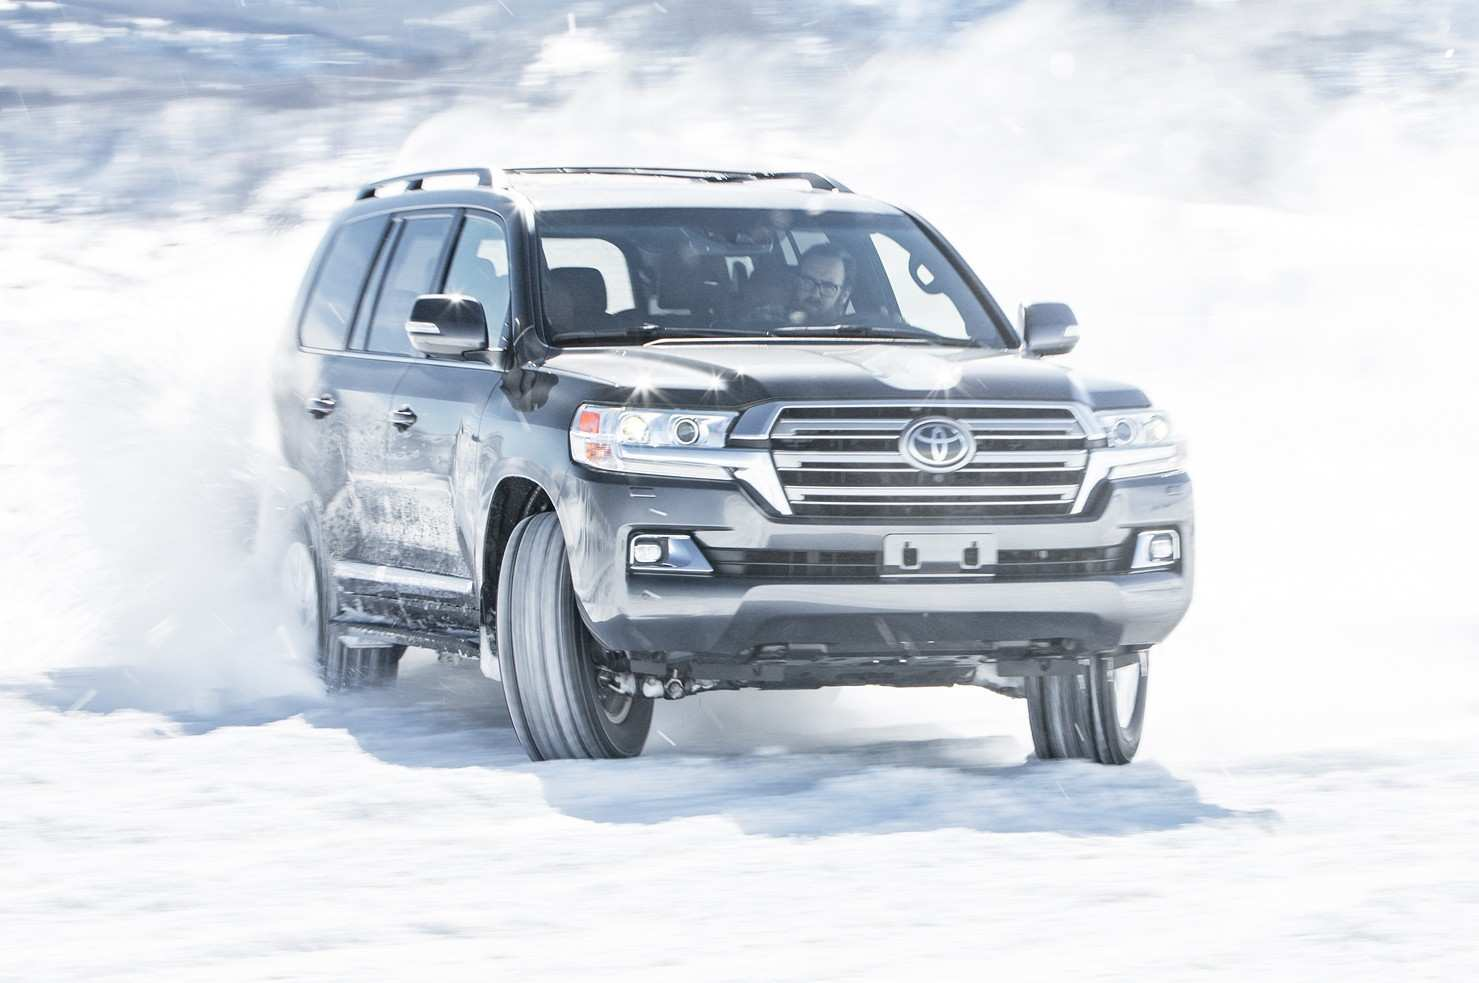 45 Gallery of New Toyota Land Cruiser 2019 Rumor Pictures by New Toyota Land Cruiser 2019 Rumor